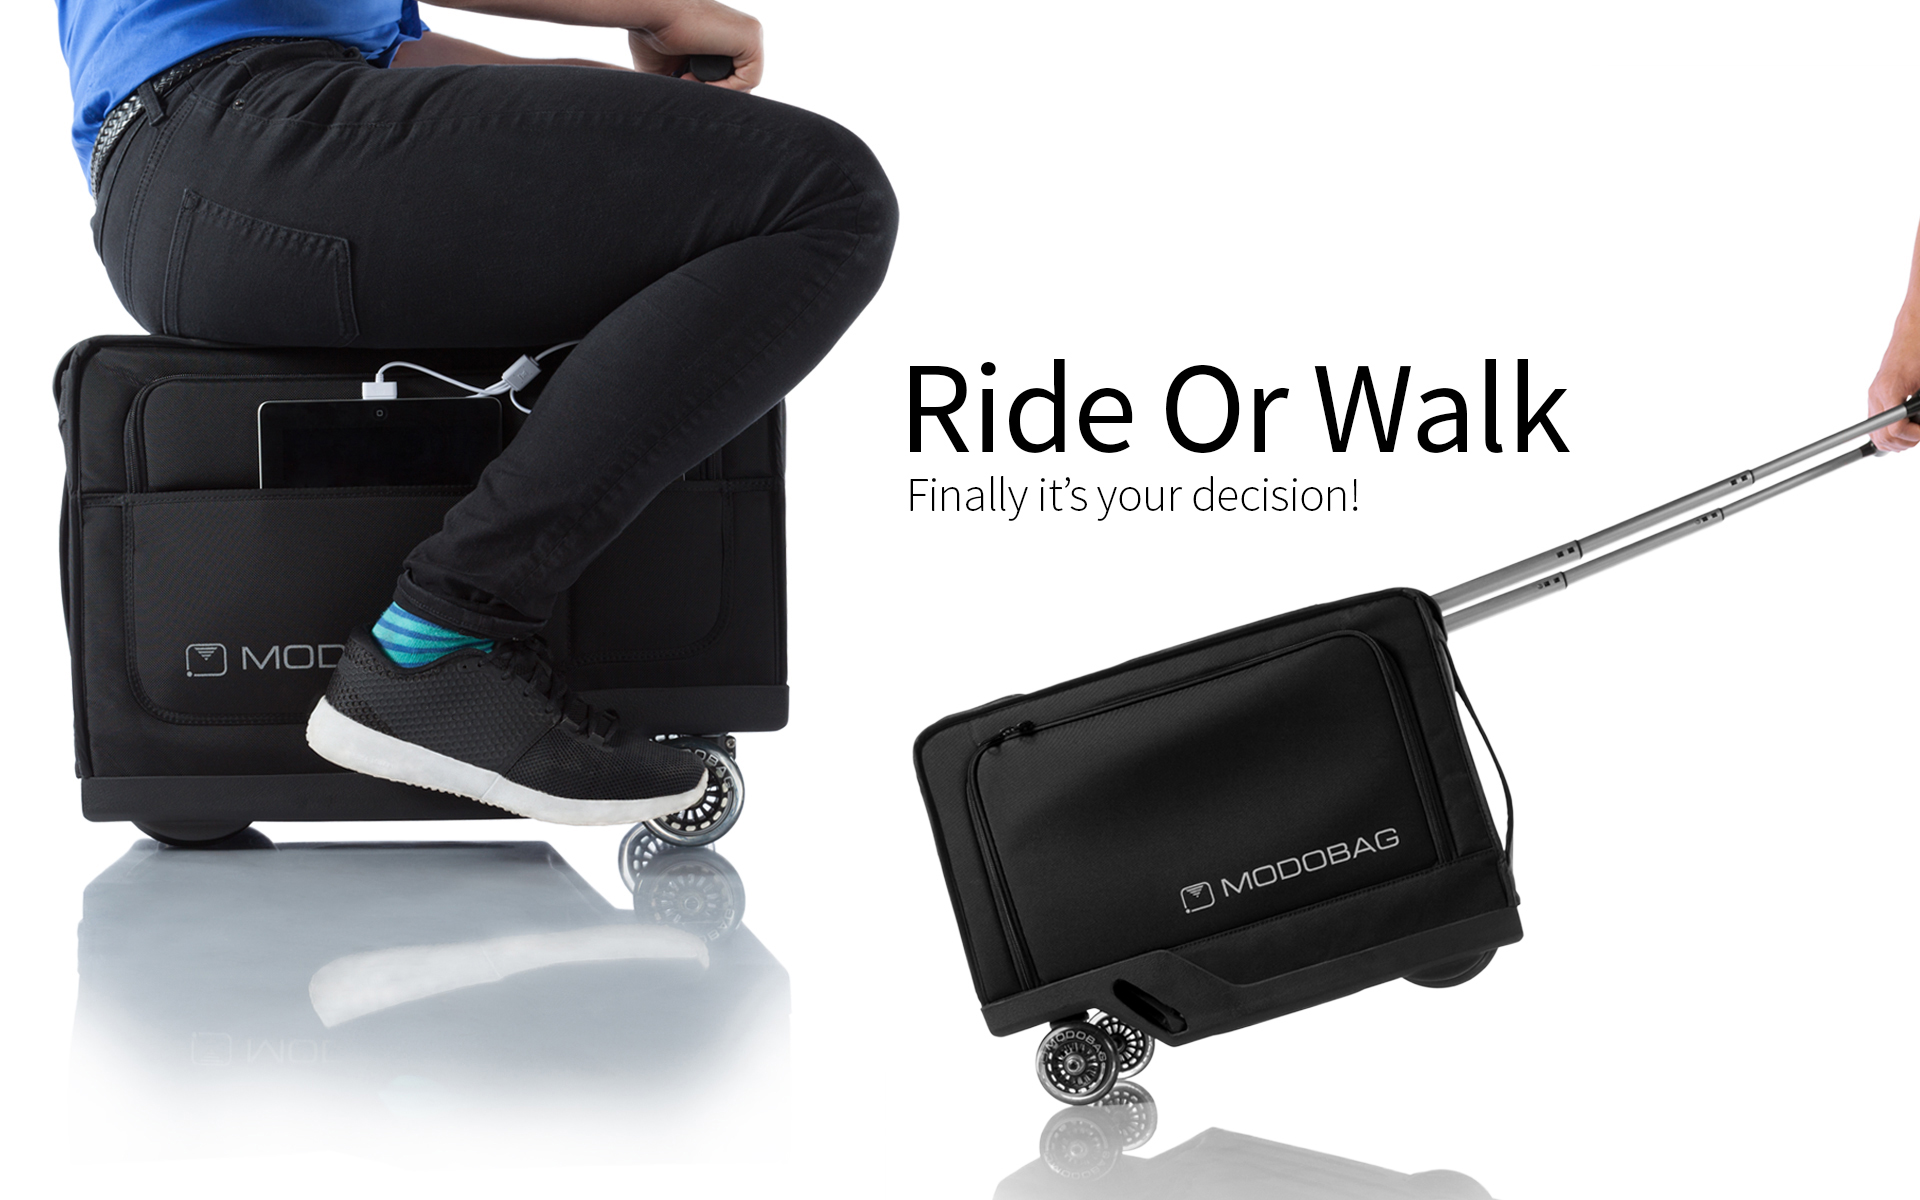 Image result for Modobag: World's First Motorized, Rideable Luggage!  Images